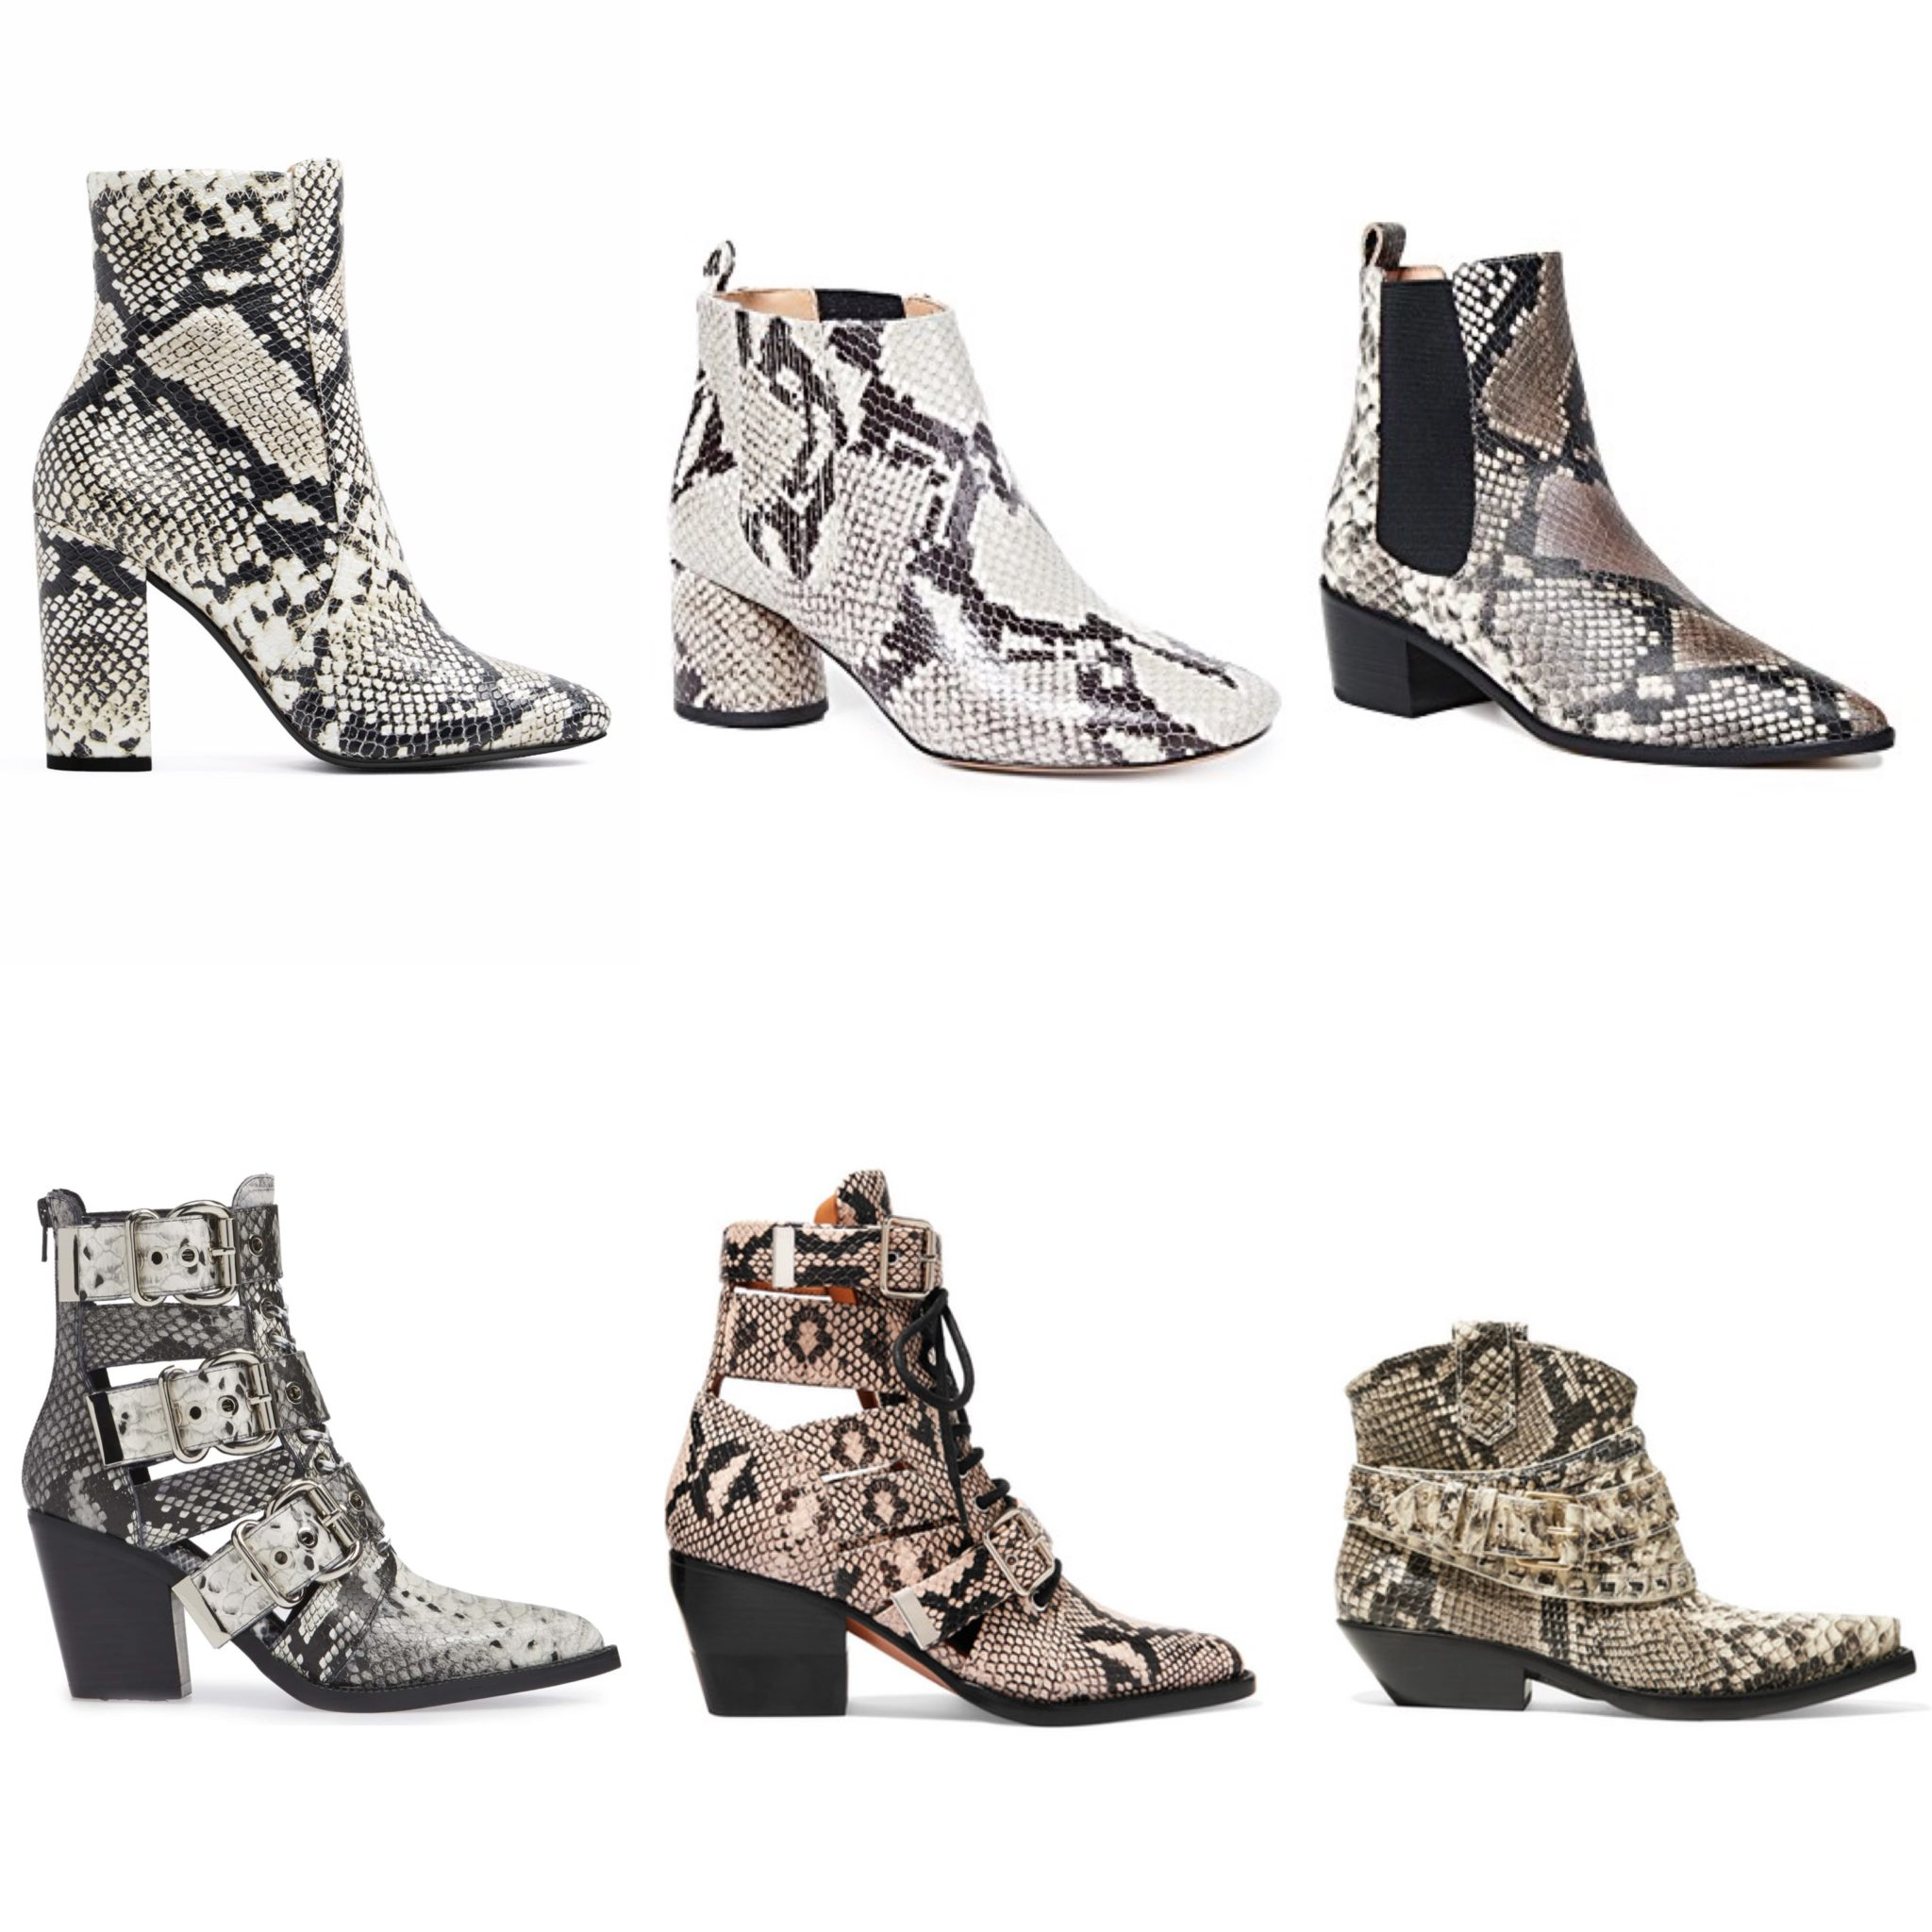 Best snakeskin ankle boots on Modersvp.com. Luxury and Affordable selection